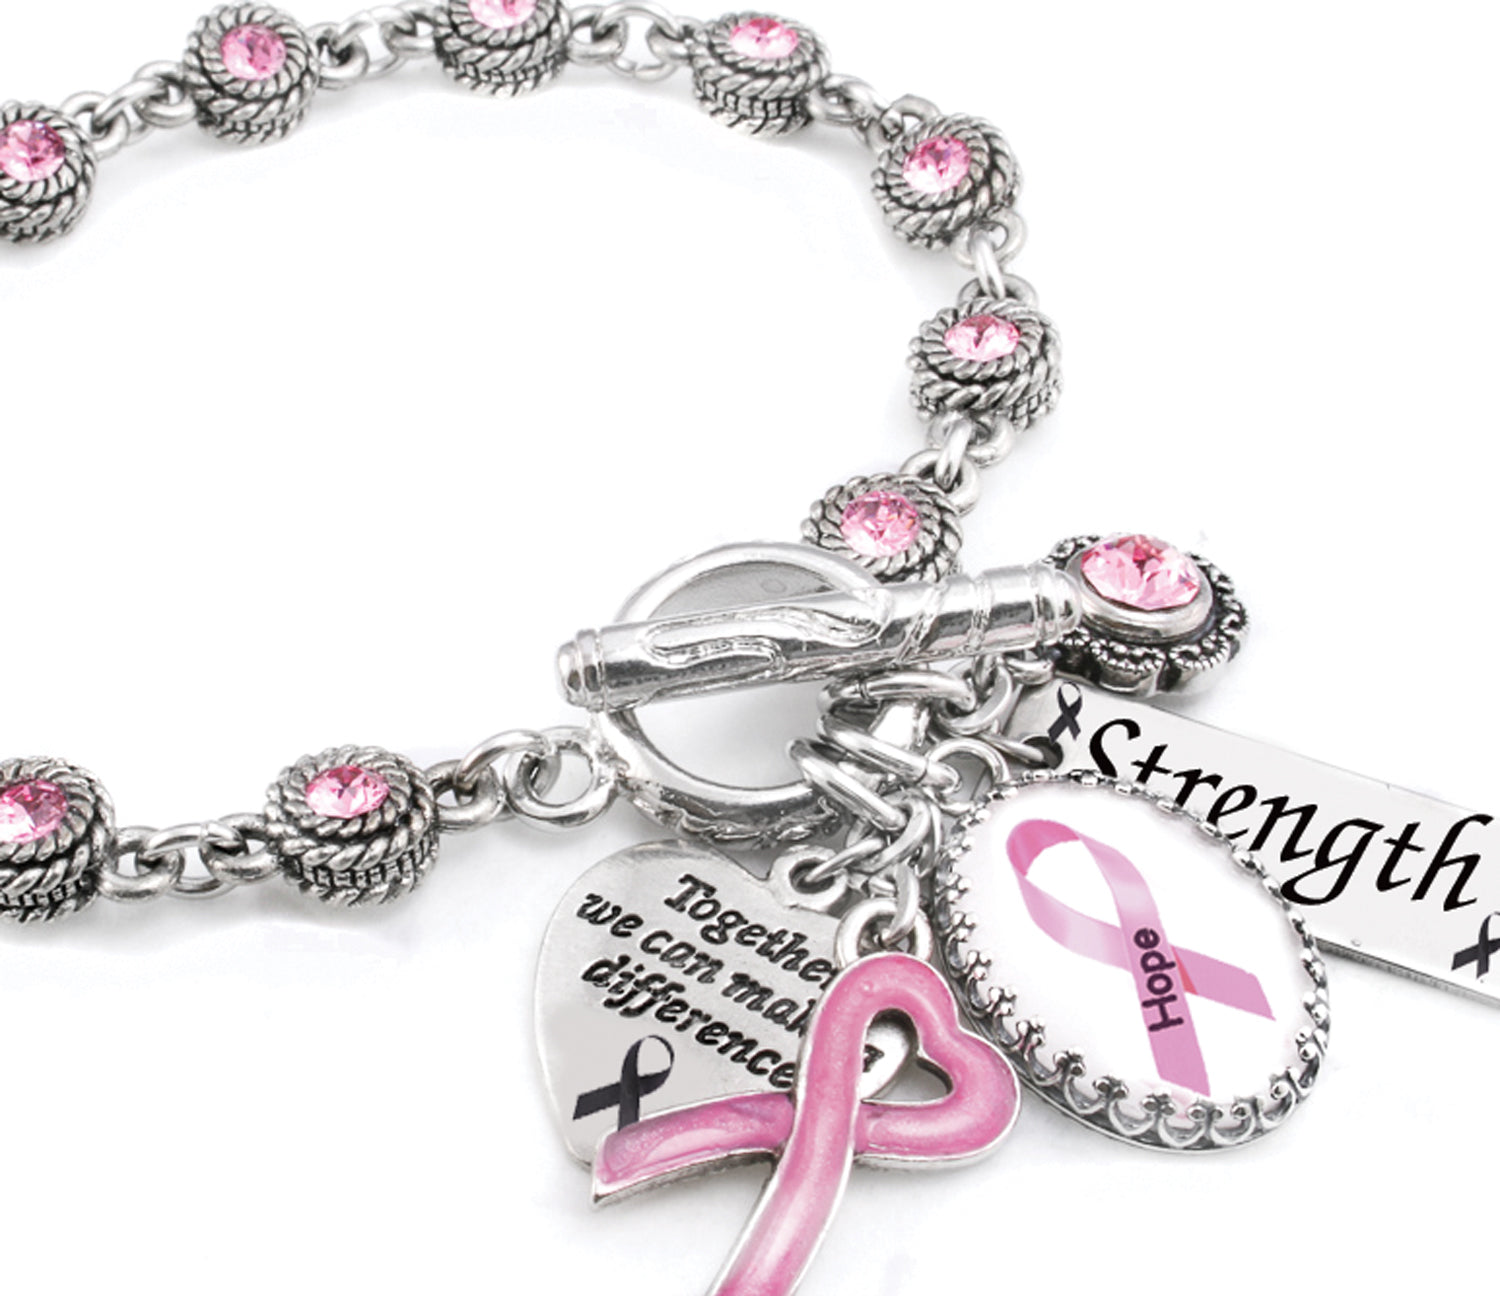 cervical pin survivor breast support encouragement bracelet jewelry cancer